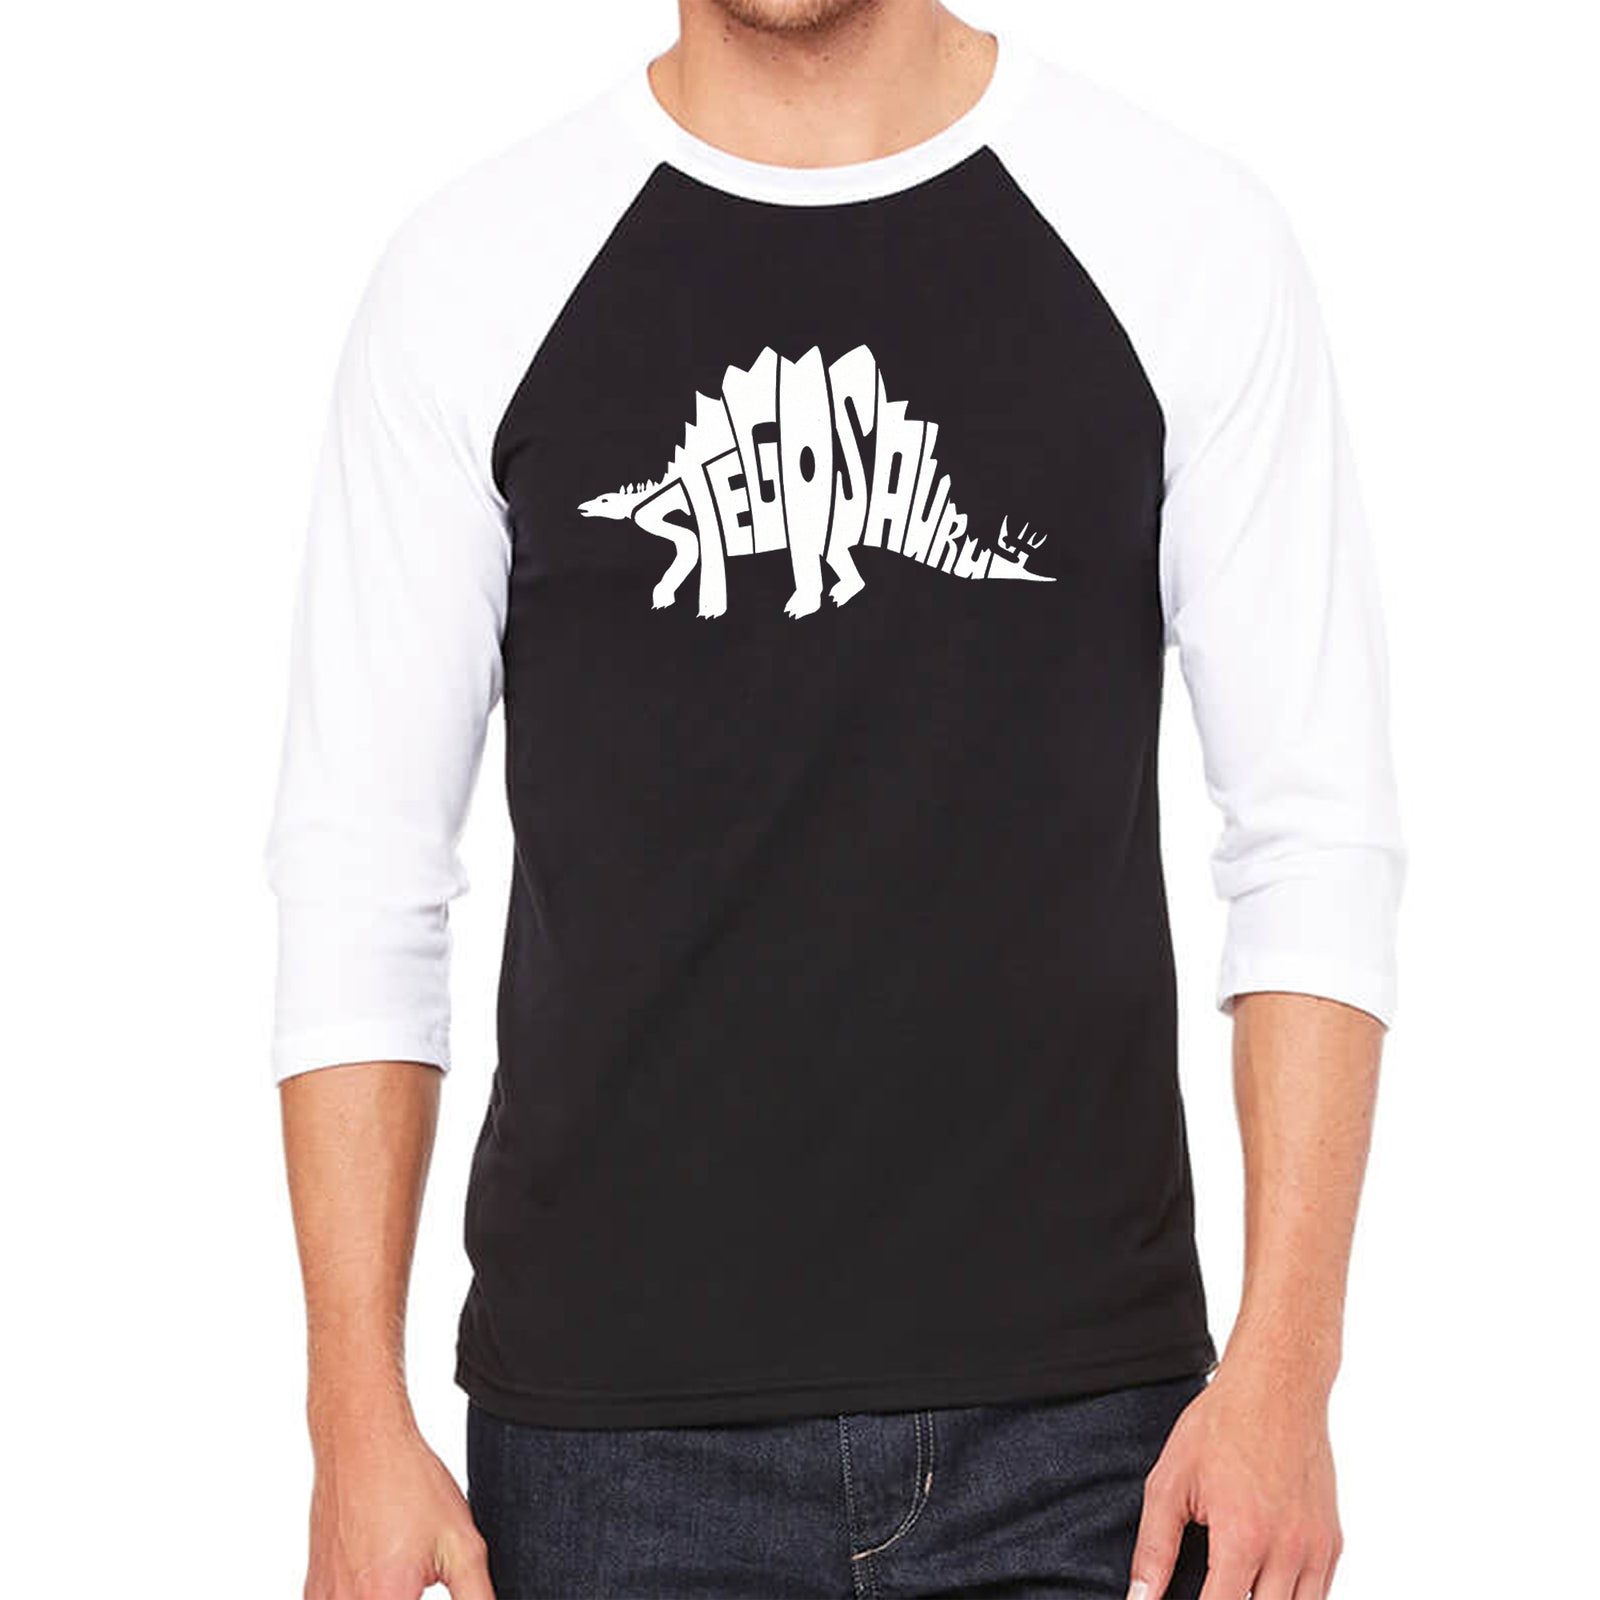 Men's Raglan Baseball Word Art T-shirt - STEGOSAURUS